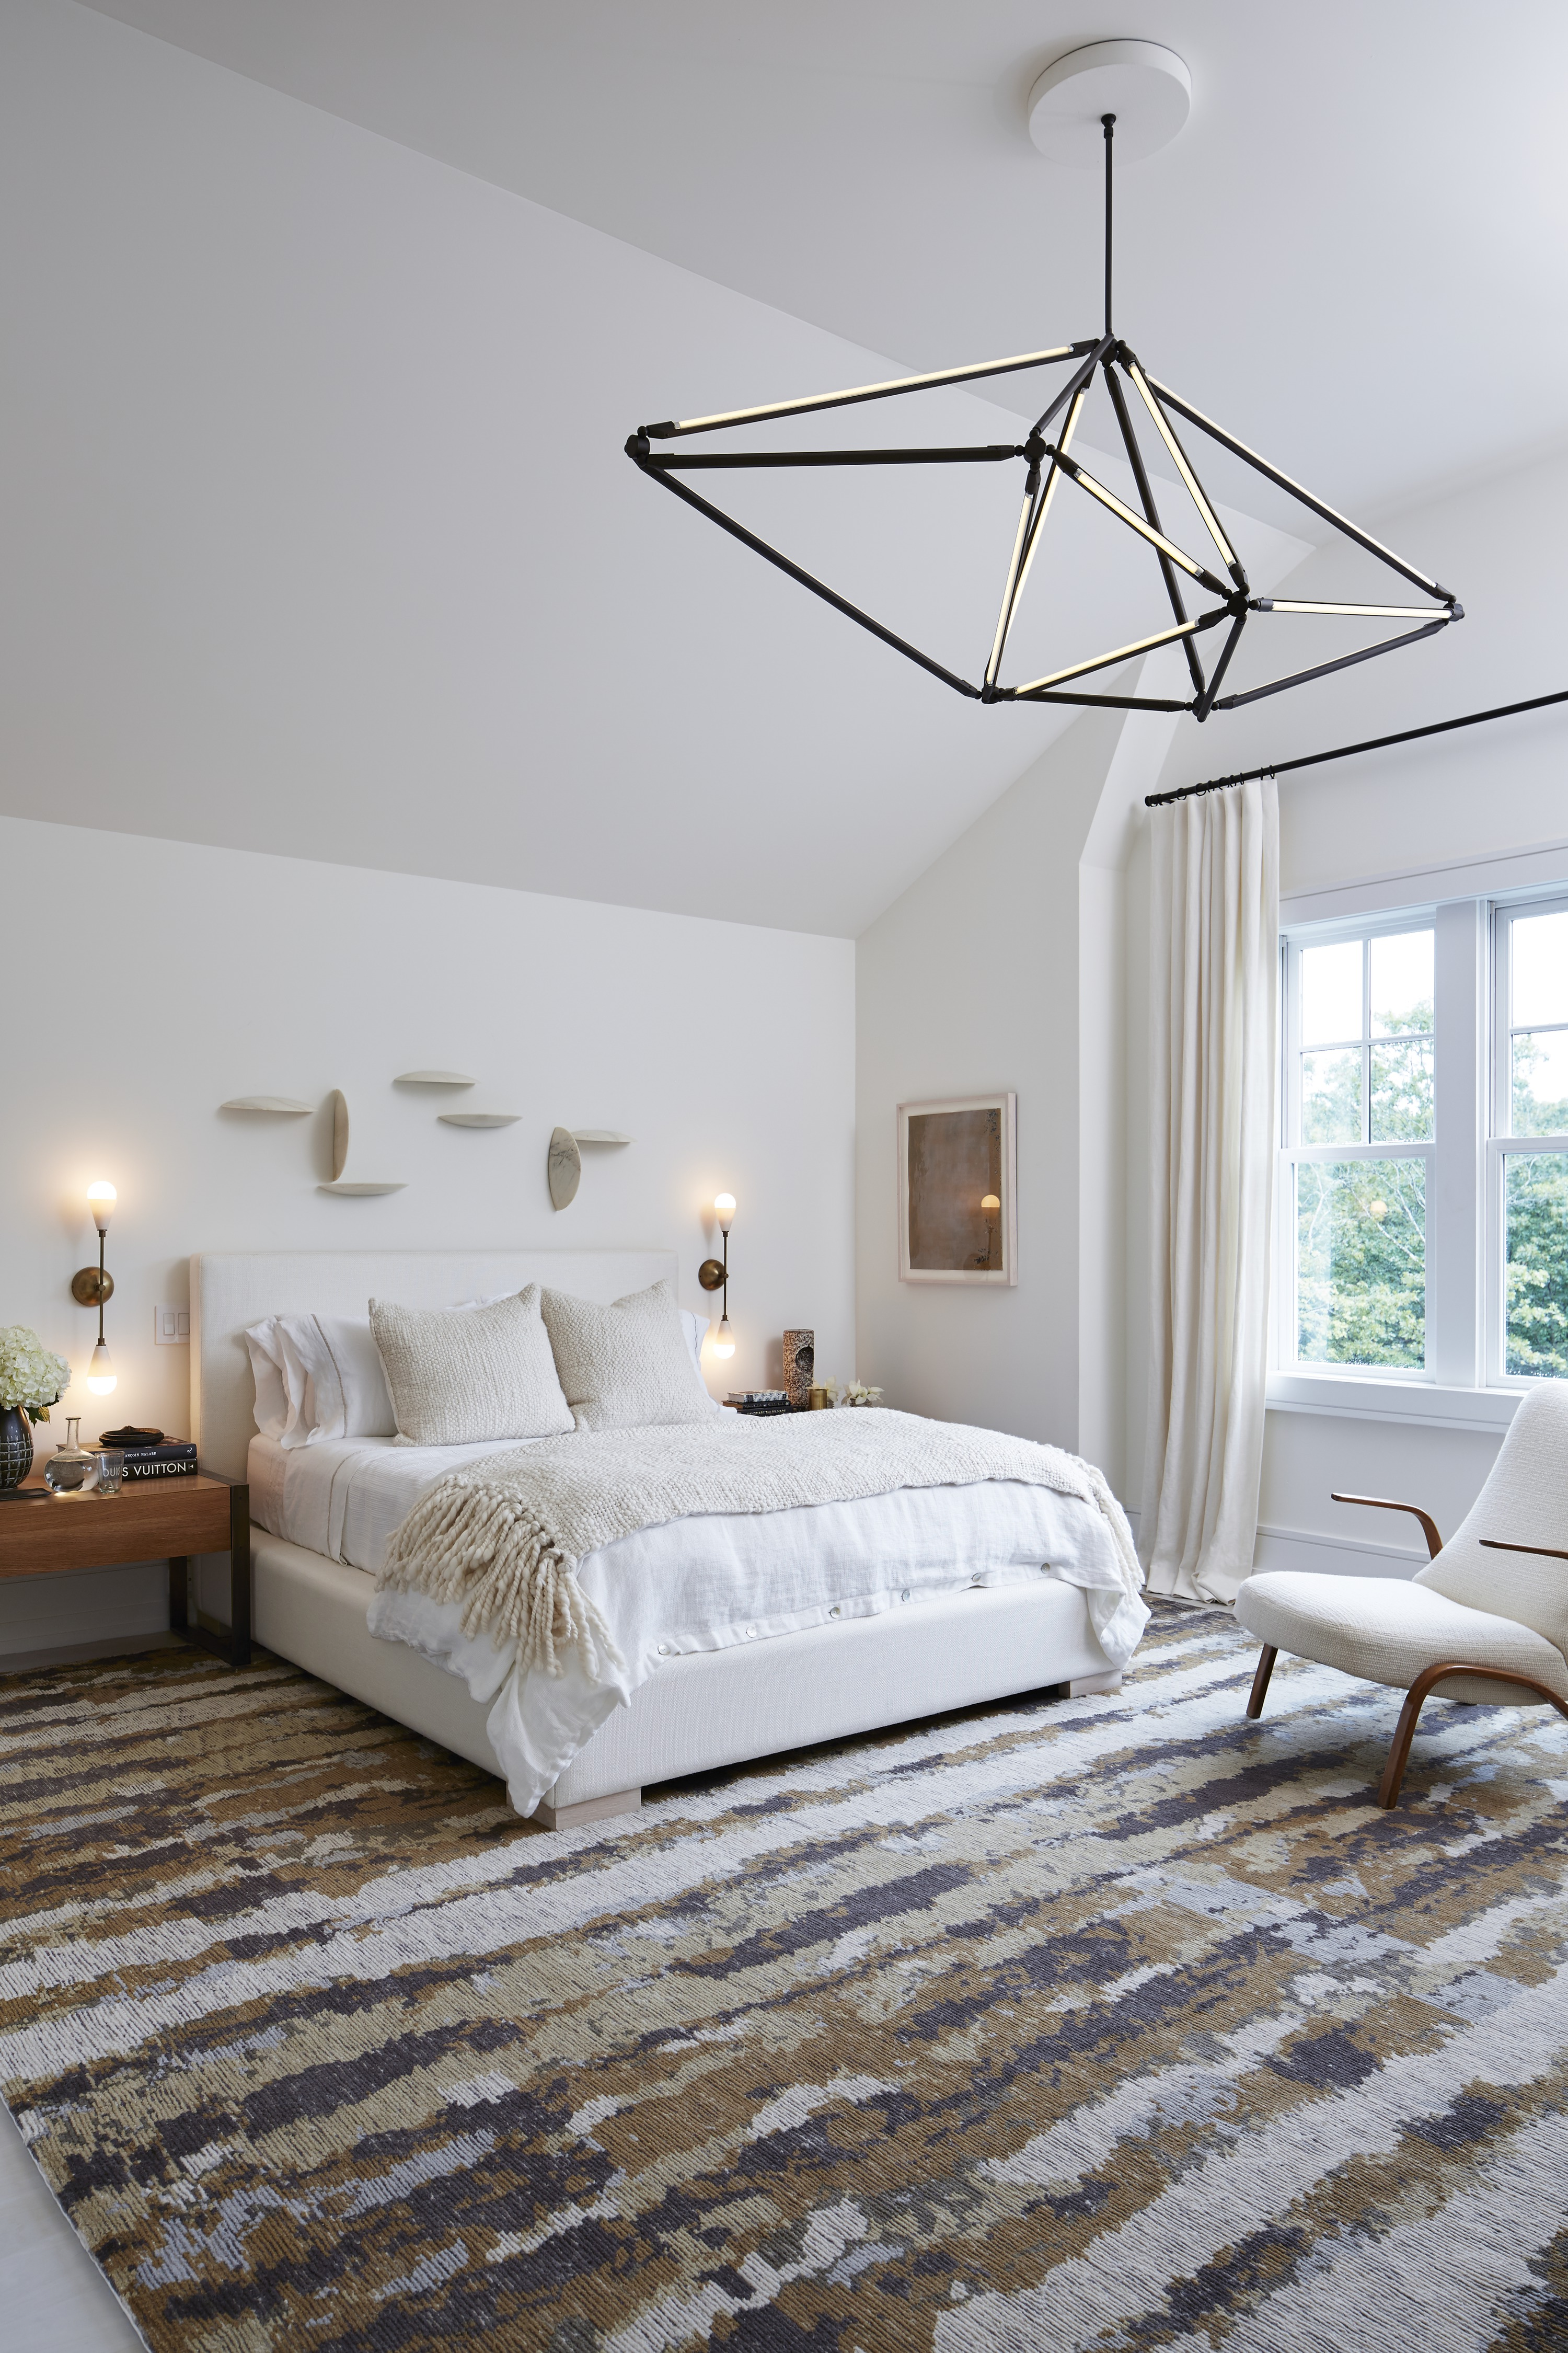 Off-whites and shades of brown bring a quiet warmth to this bedroom. Exquisite, organic pieces combine for a timeless effect.